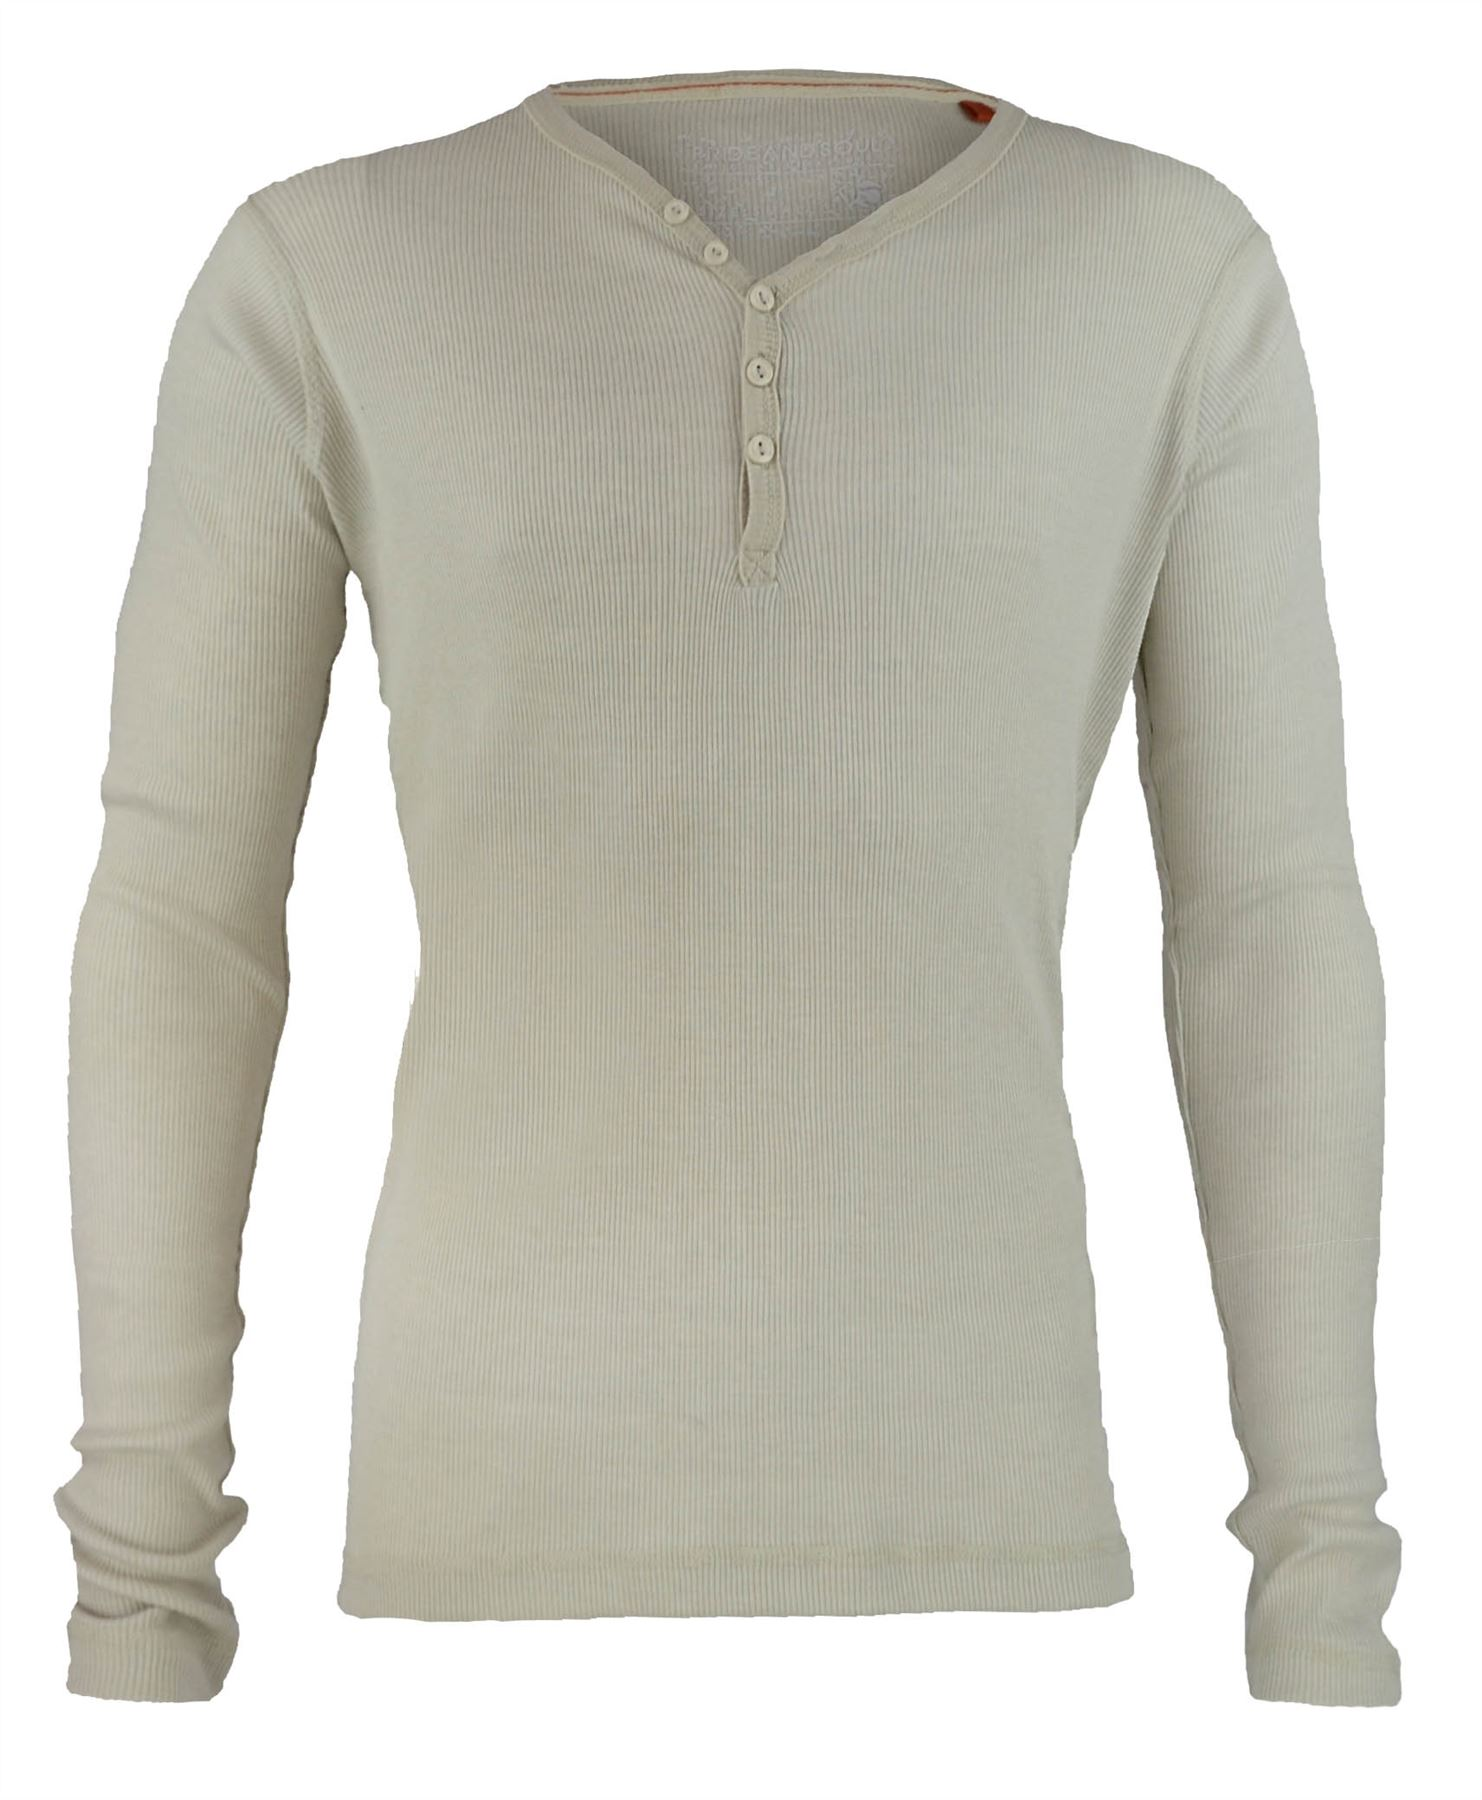 Mens ribbed v neck top long sleeve sweatshirt jersey for Best long sleeve shirts for men